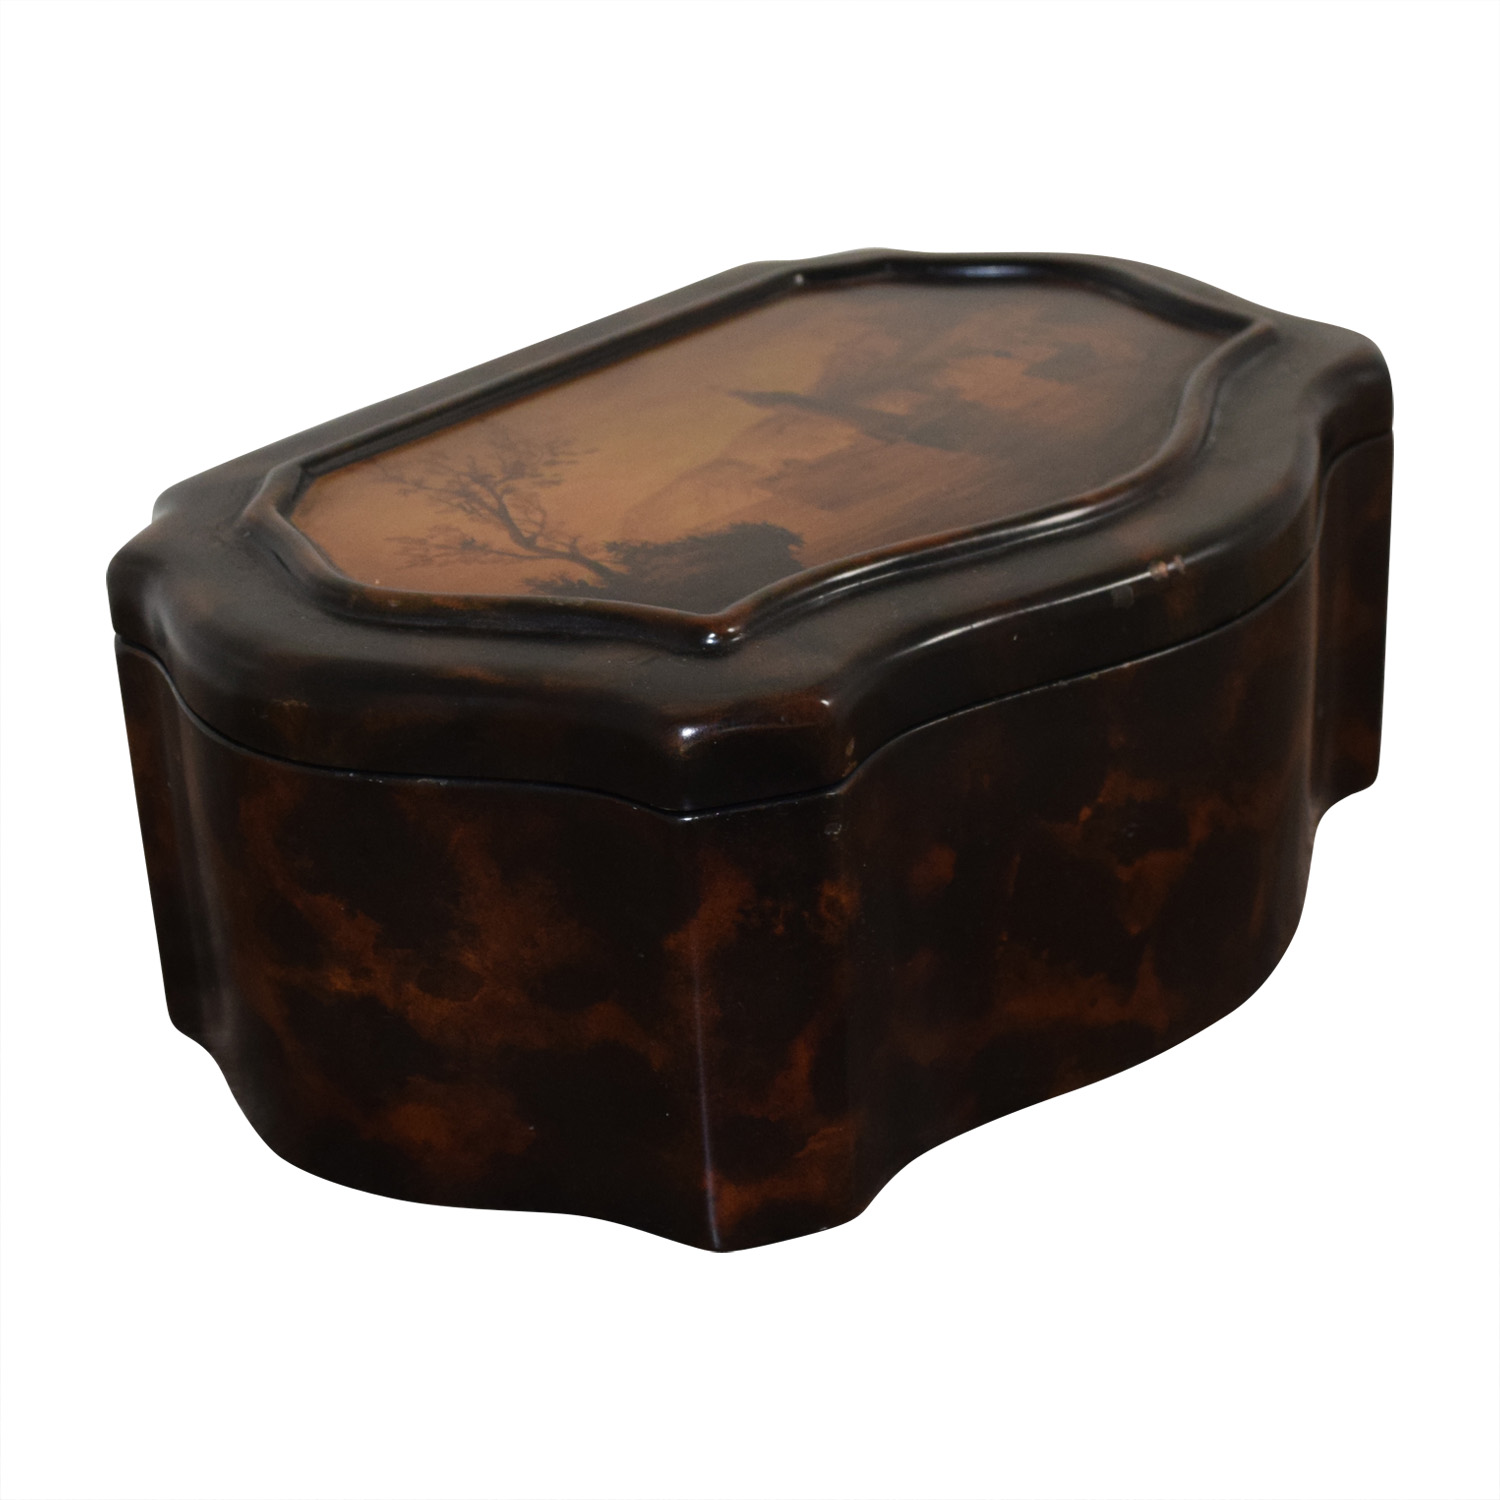 Vintage Wooden Accent Box dimensions